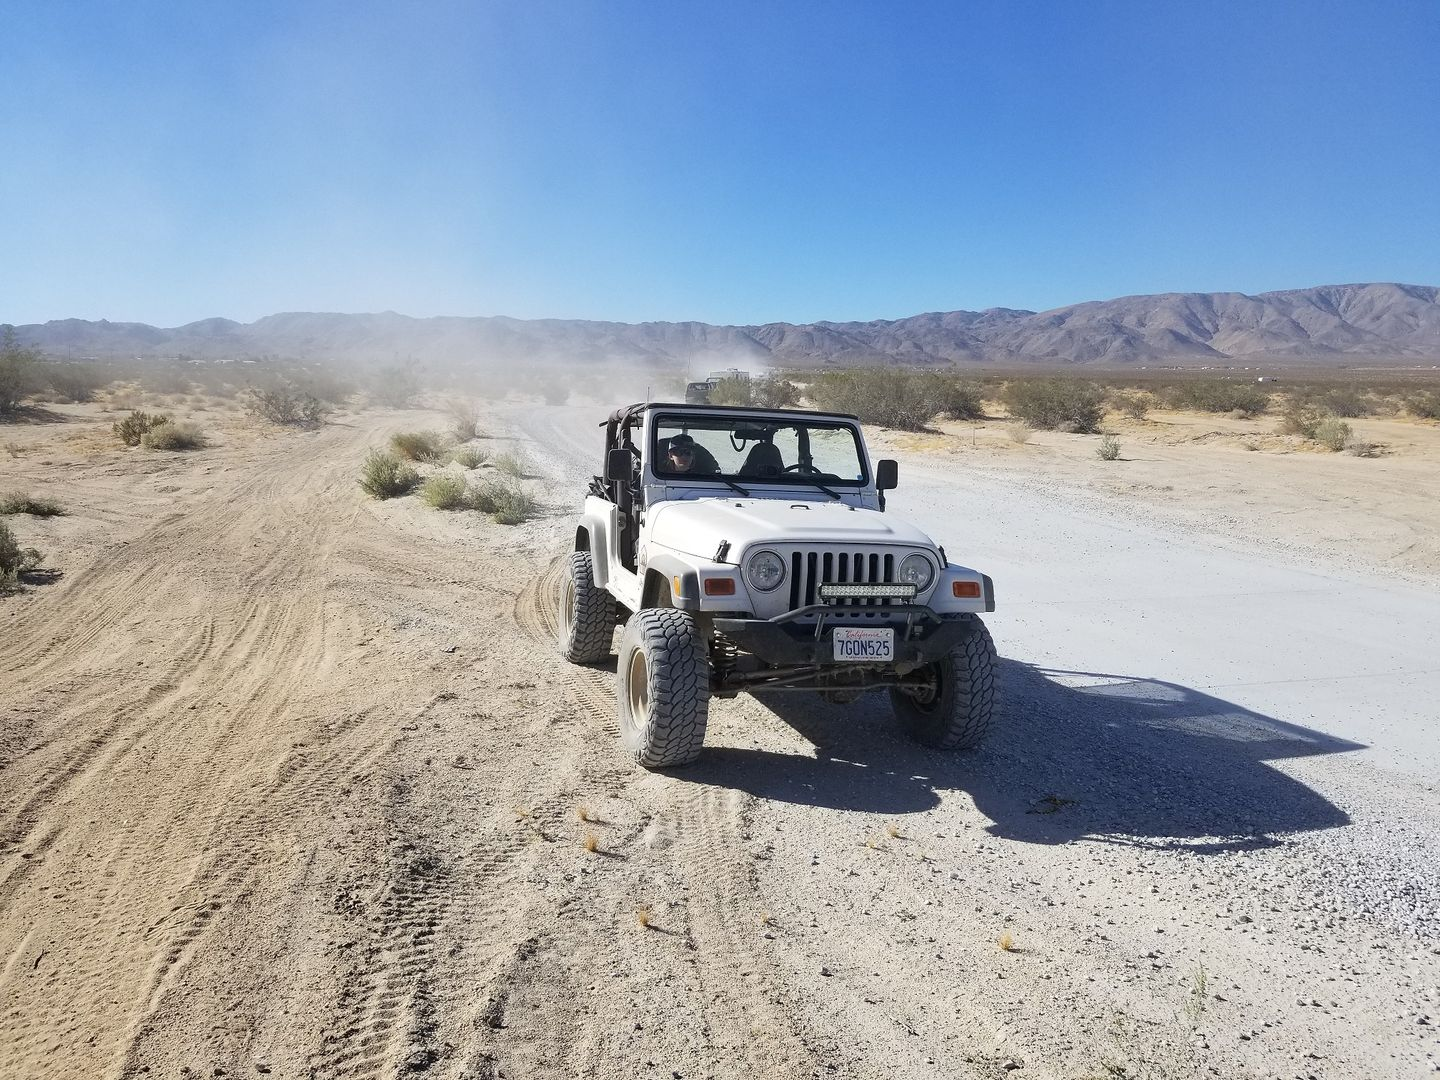 Boone Road - Johnson Valley - Waypoint 2: Wash Crossing